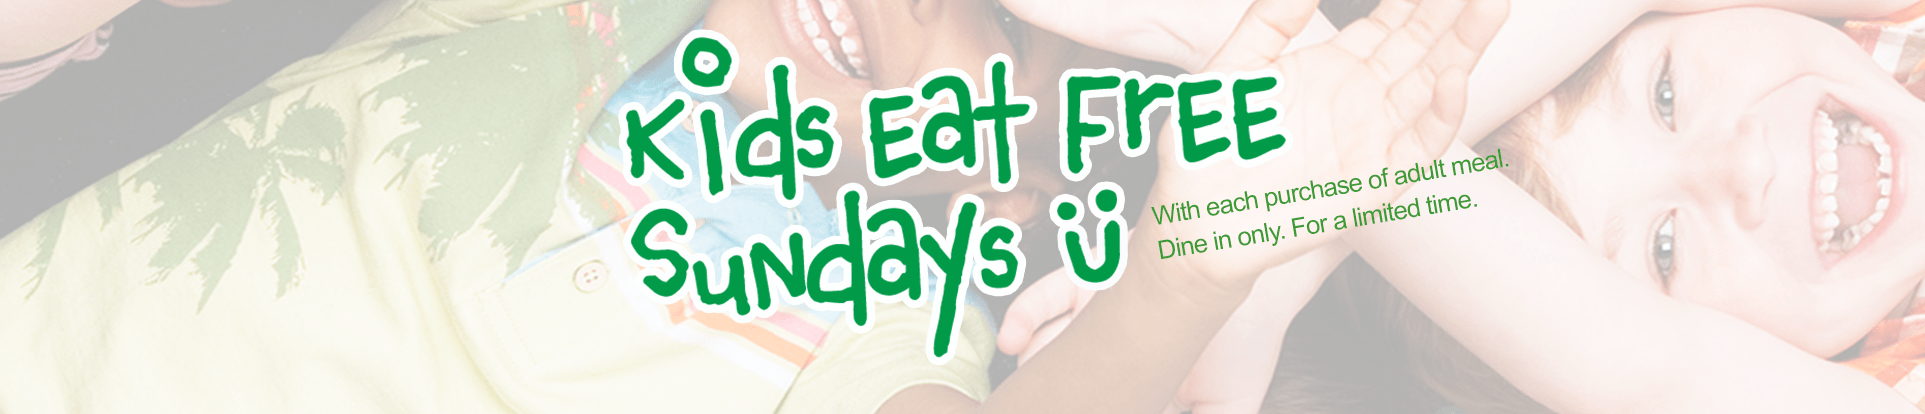 Kids Eat Free EVOS promotion